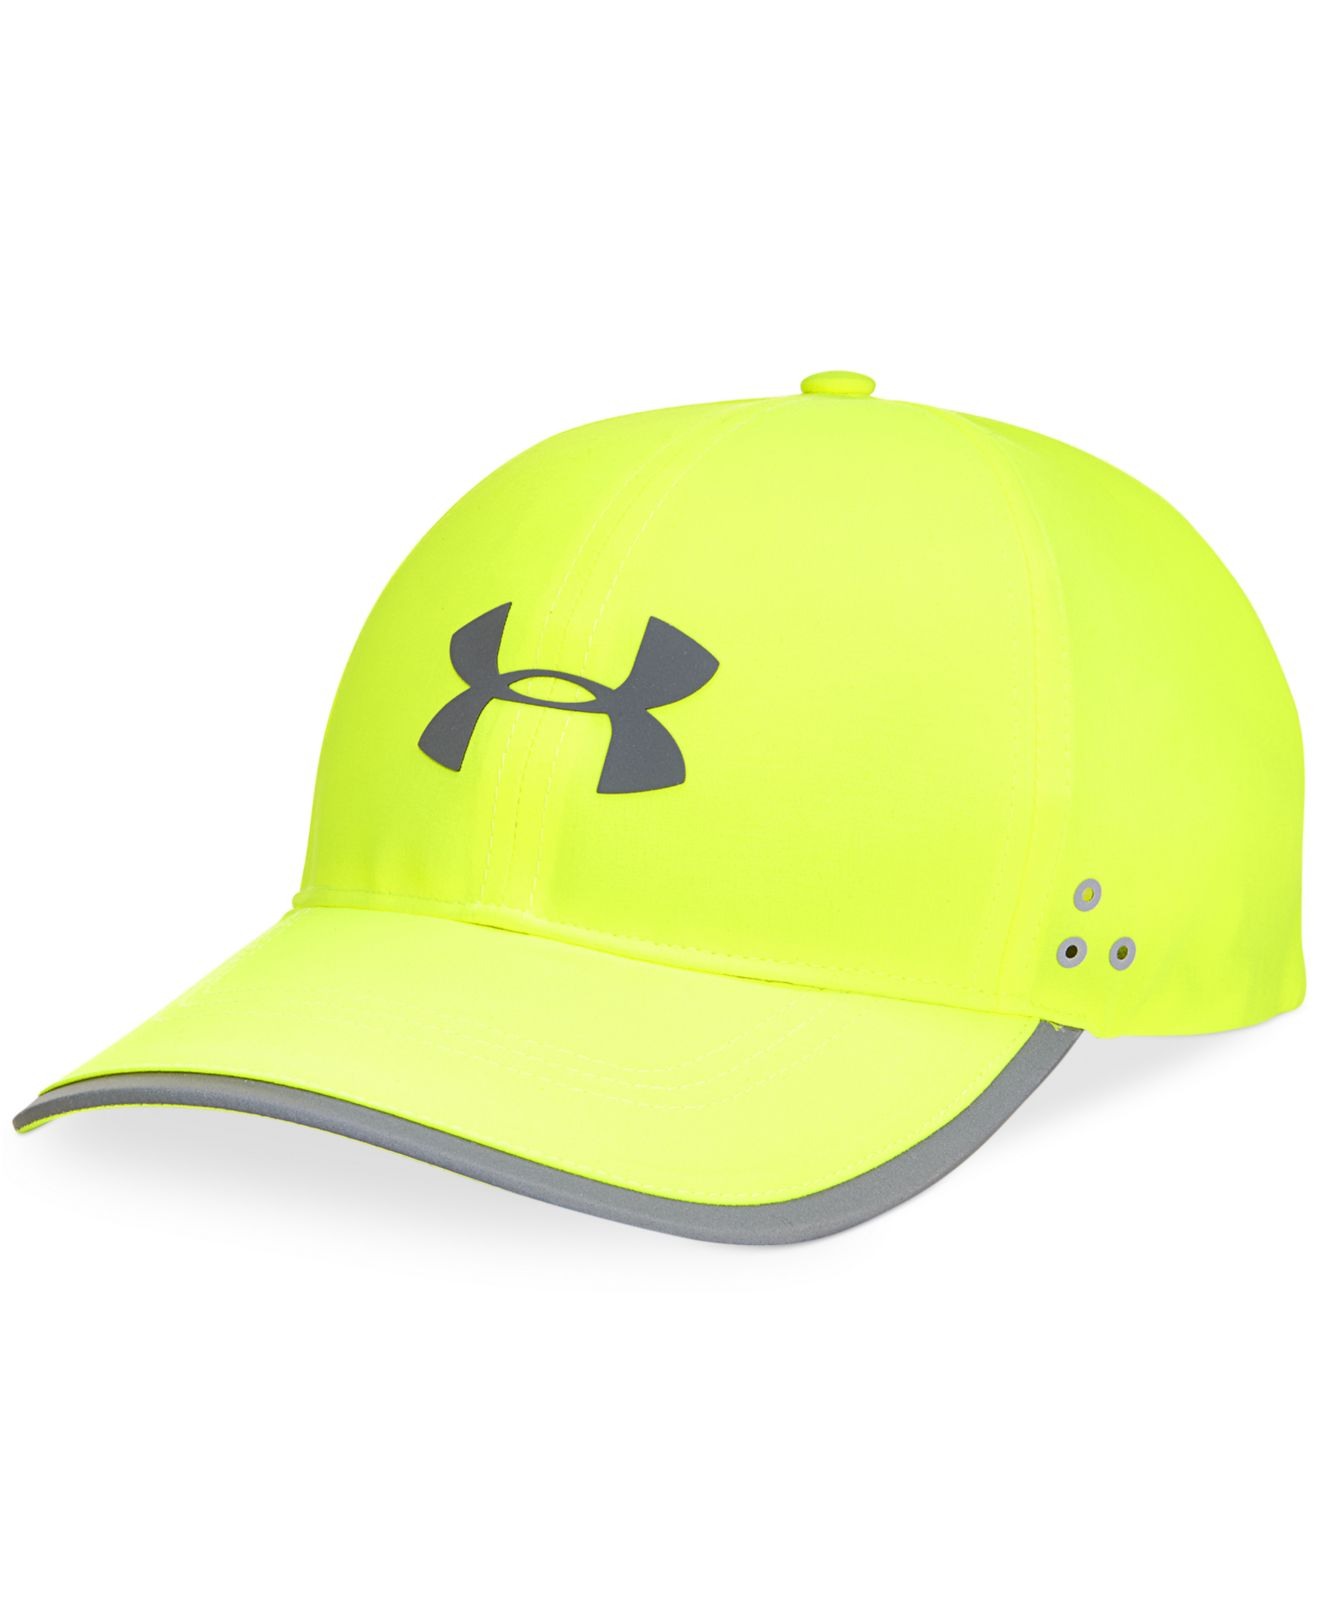 Lyst - Under Armour Ultimate Run Performance Hat in Yellow for Men d7f88a188dc